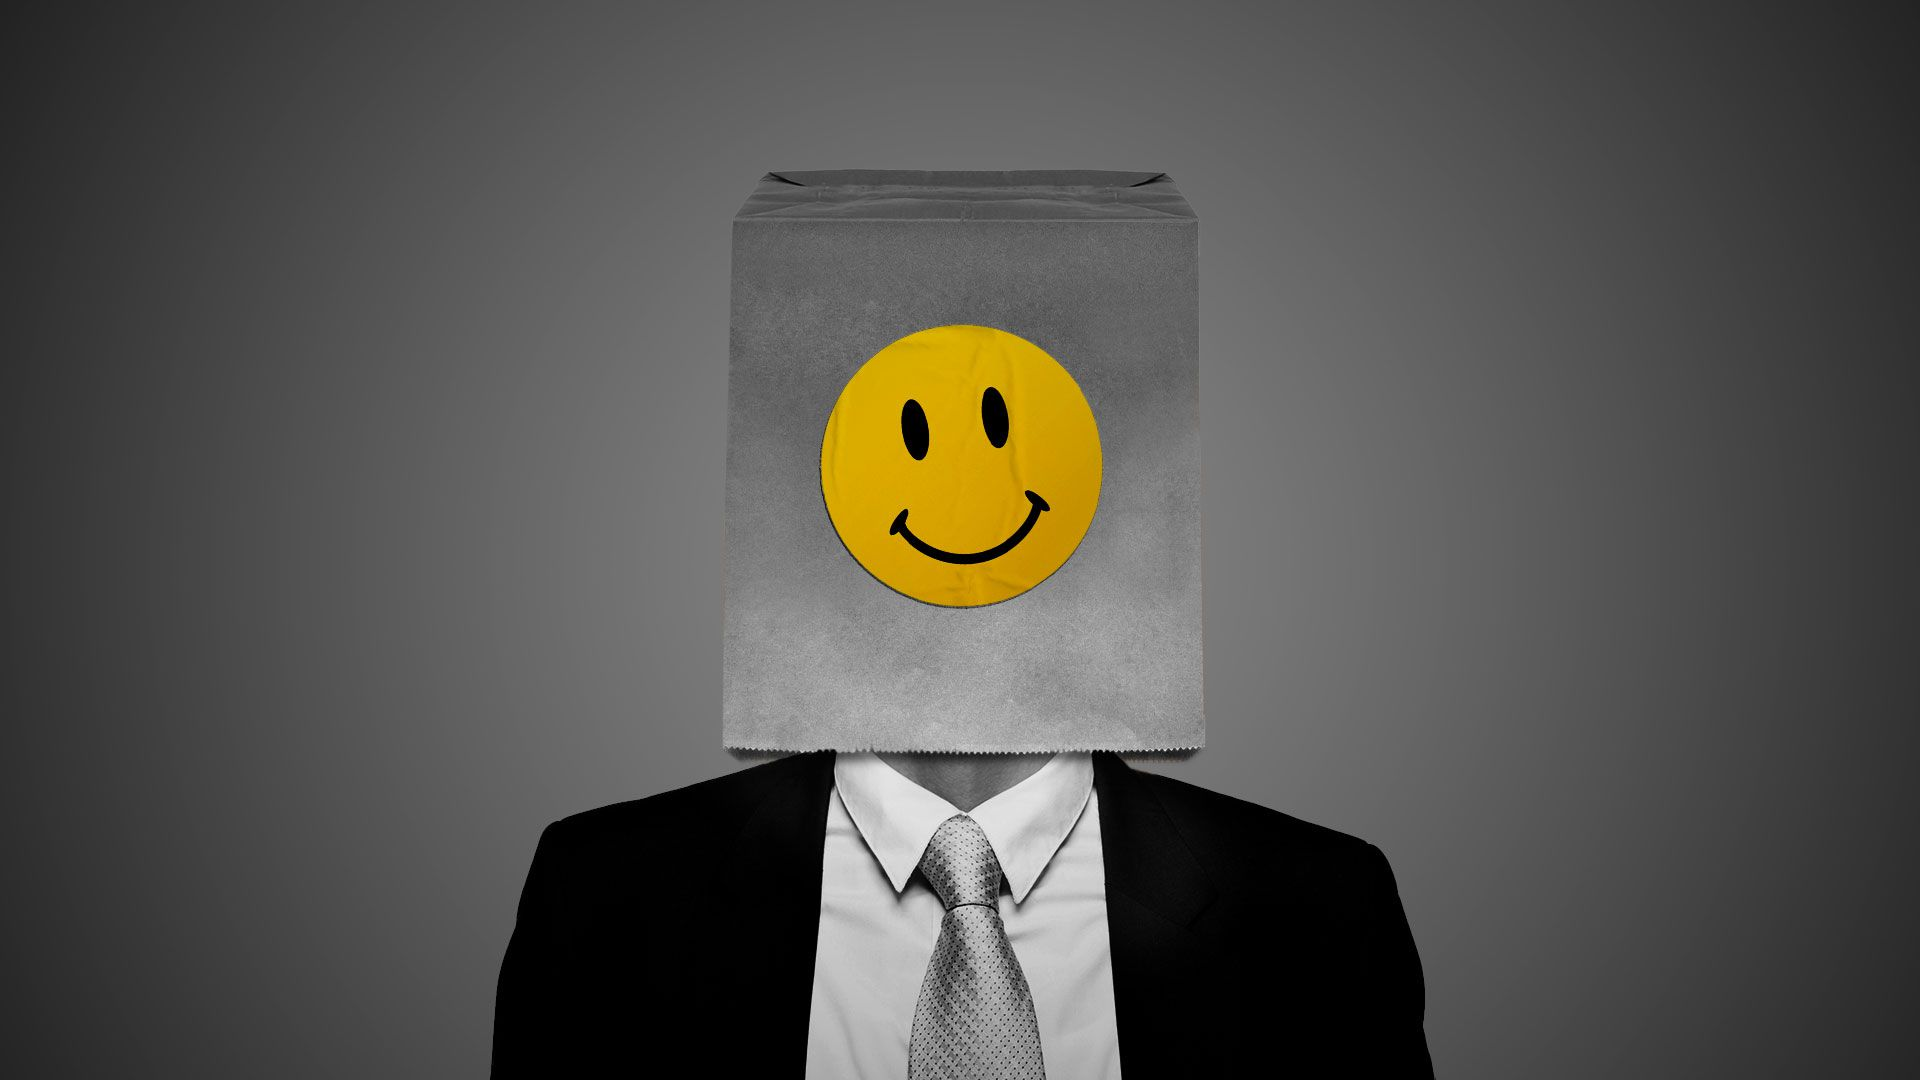 Illustration of a paper bag with a smiley face sticker over the head of a man in a suit